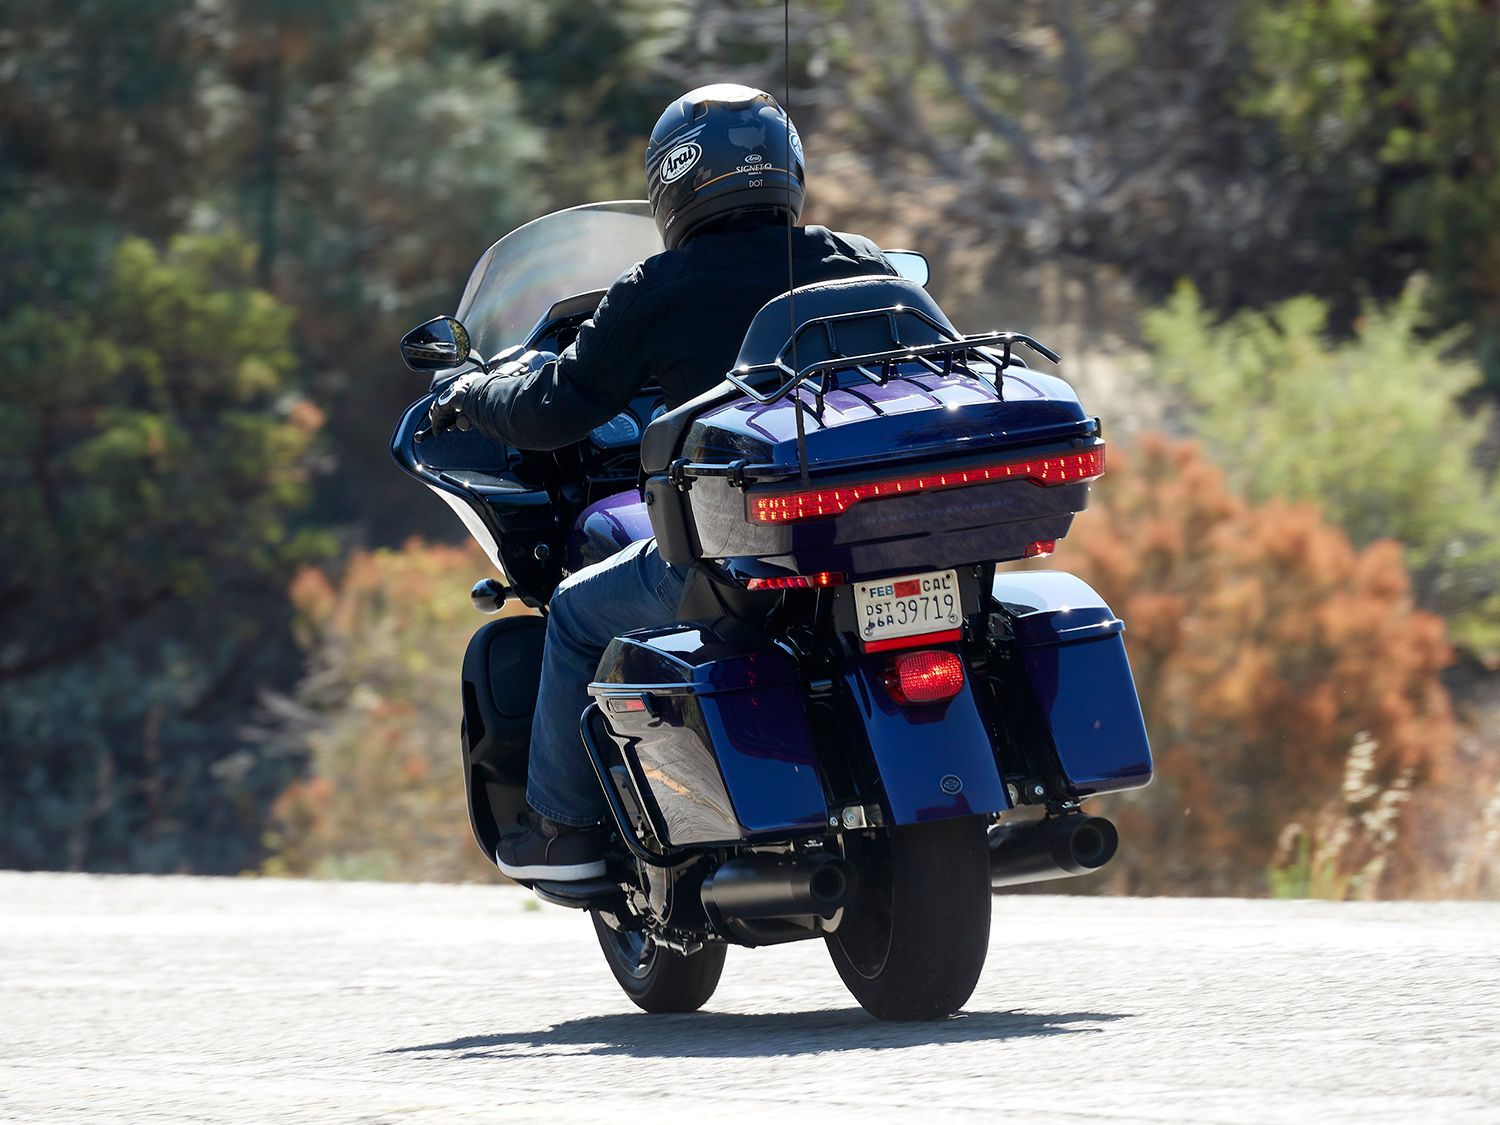 The Road Glide Limited retains luxurious goodness as its mantra, with touring amenities like a premium Tour-Pak luggage carrier to contribute to the claimed 4.7 cubic feet of capacity.